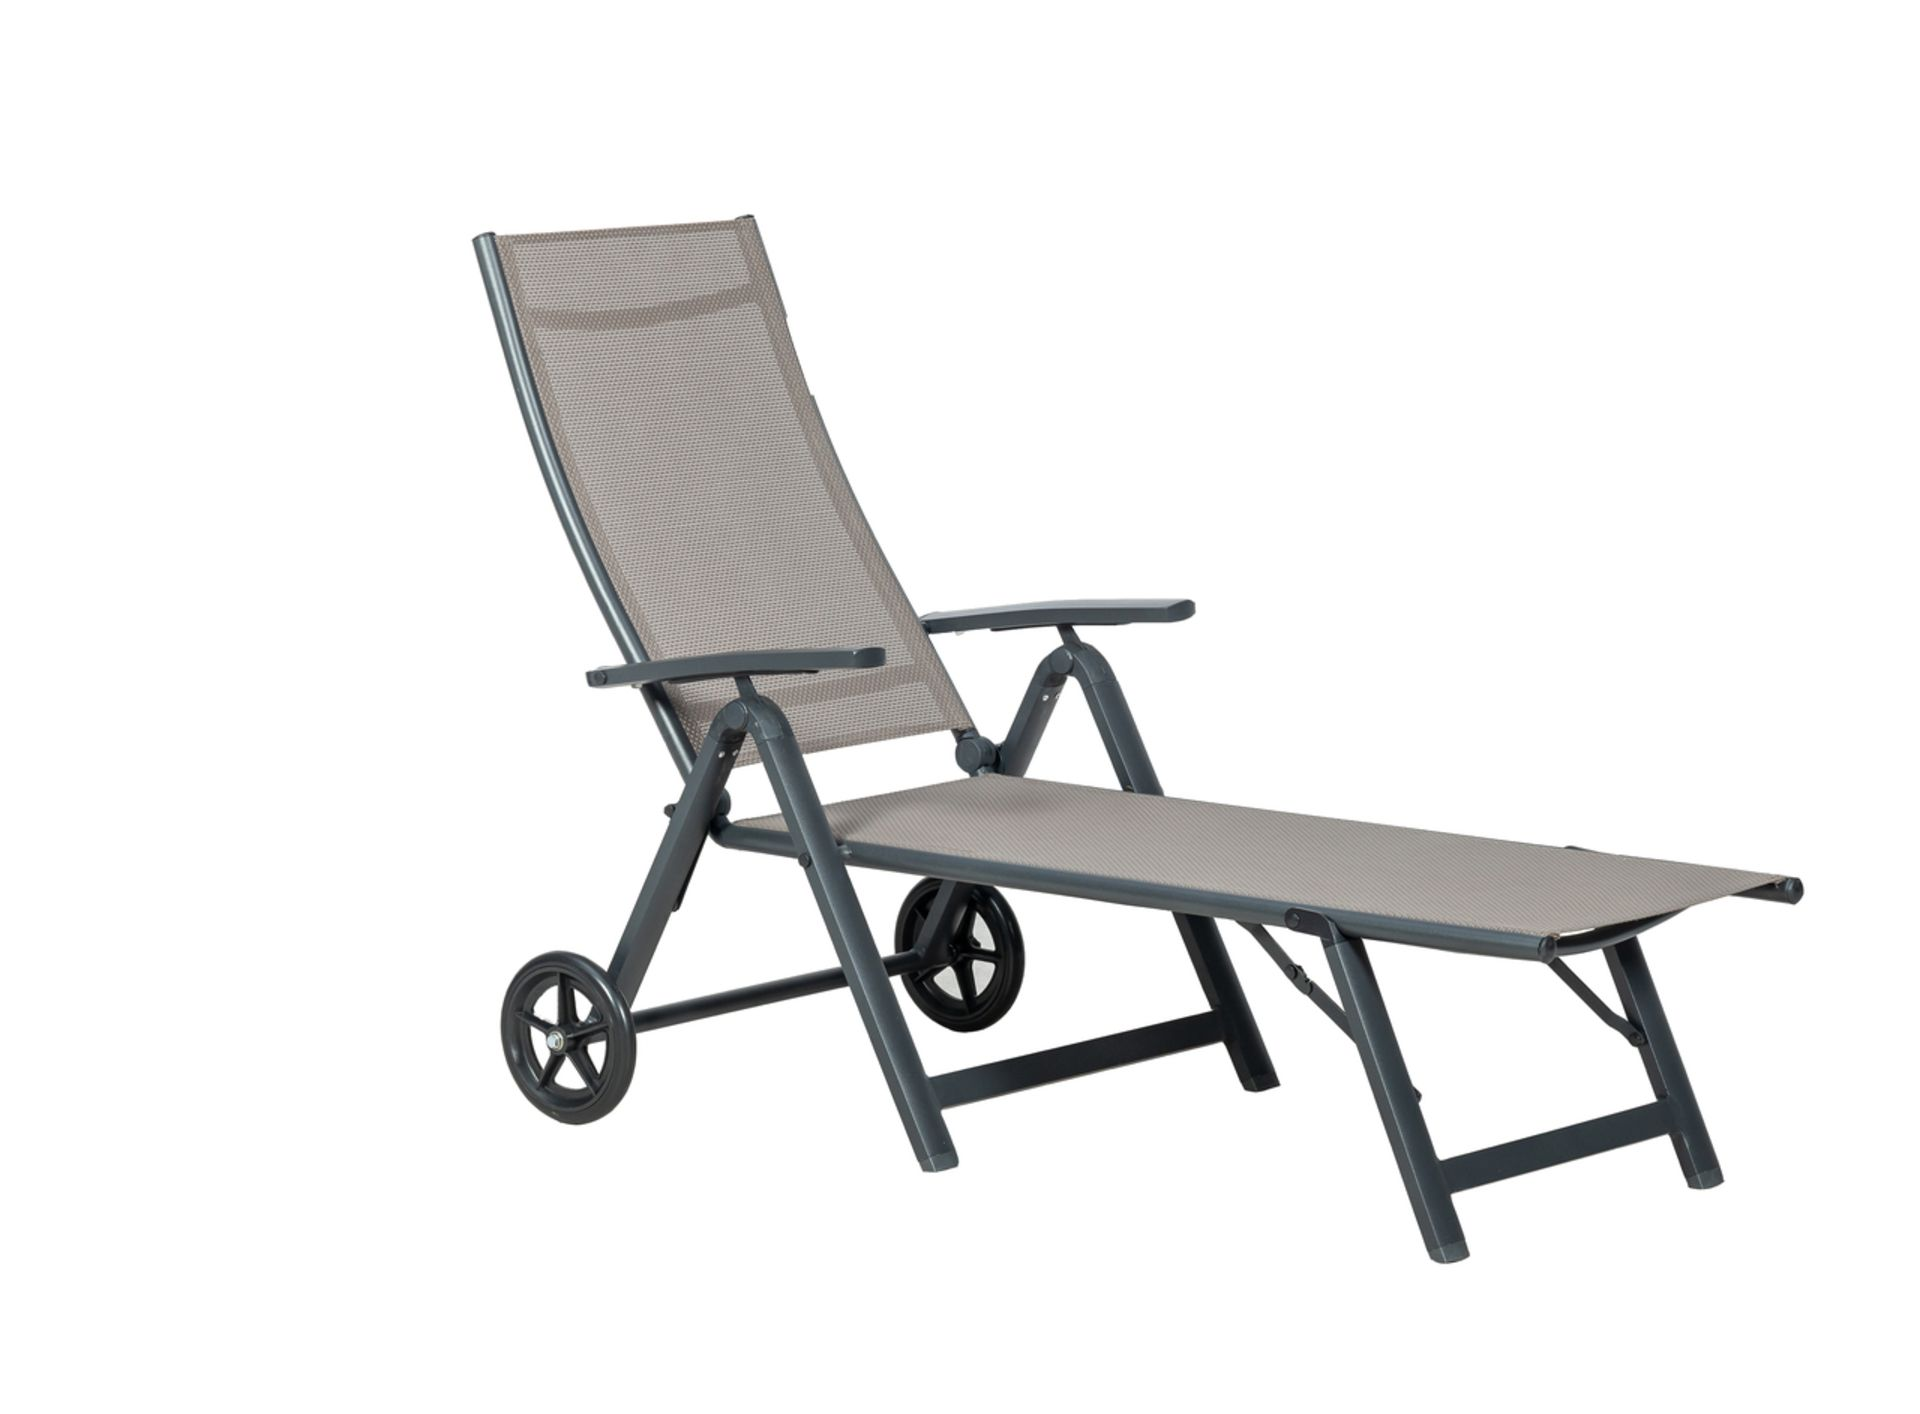 Lot 32158 - V Brand New Sorrento Wheeled Sunlounger - With High Quality 4x4 Textylene - ISP £105 (Dunelm)